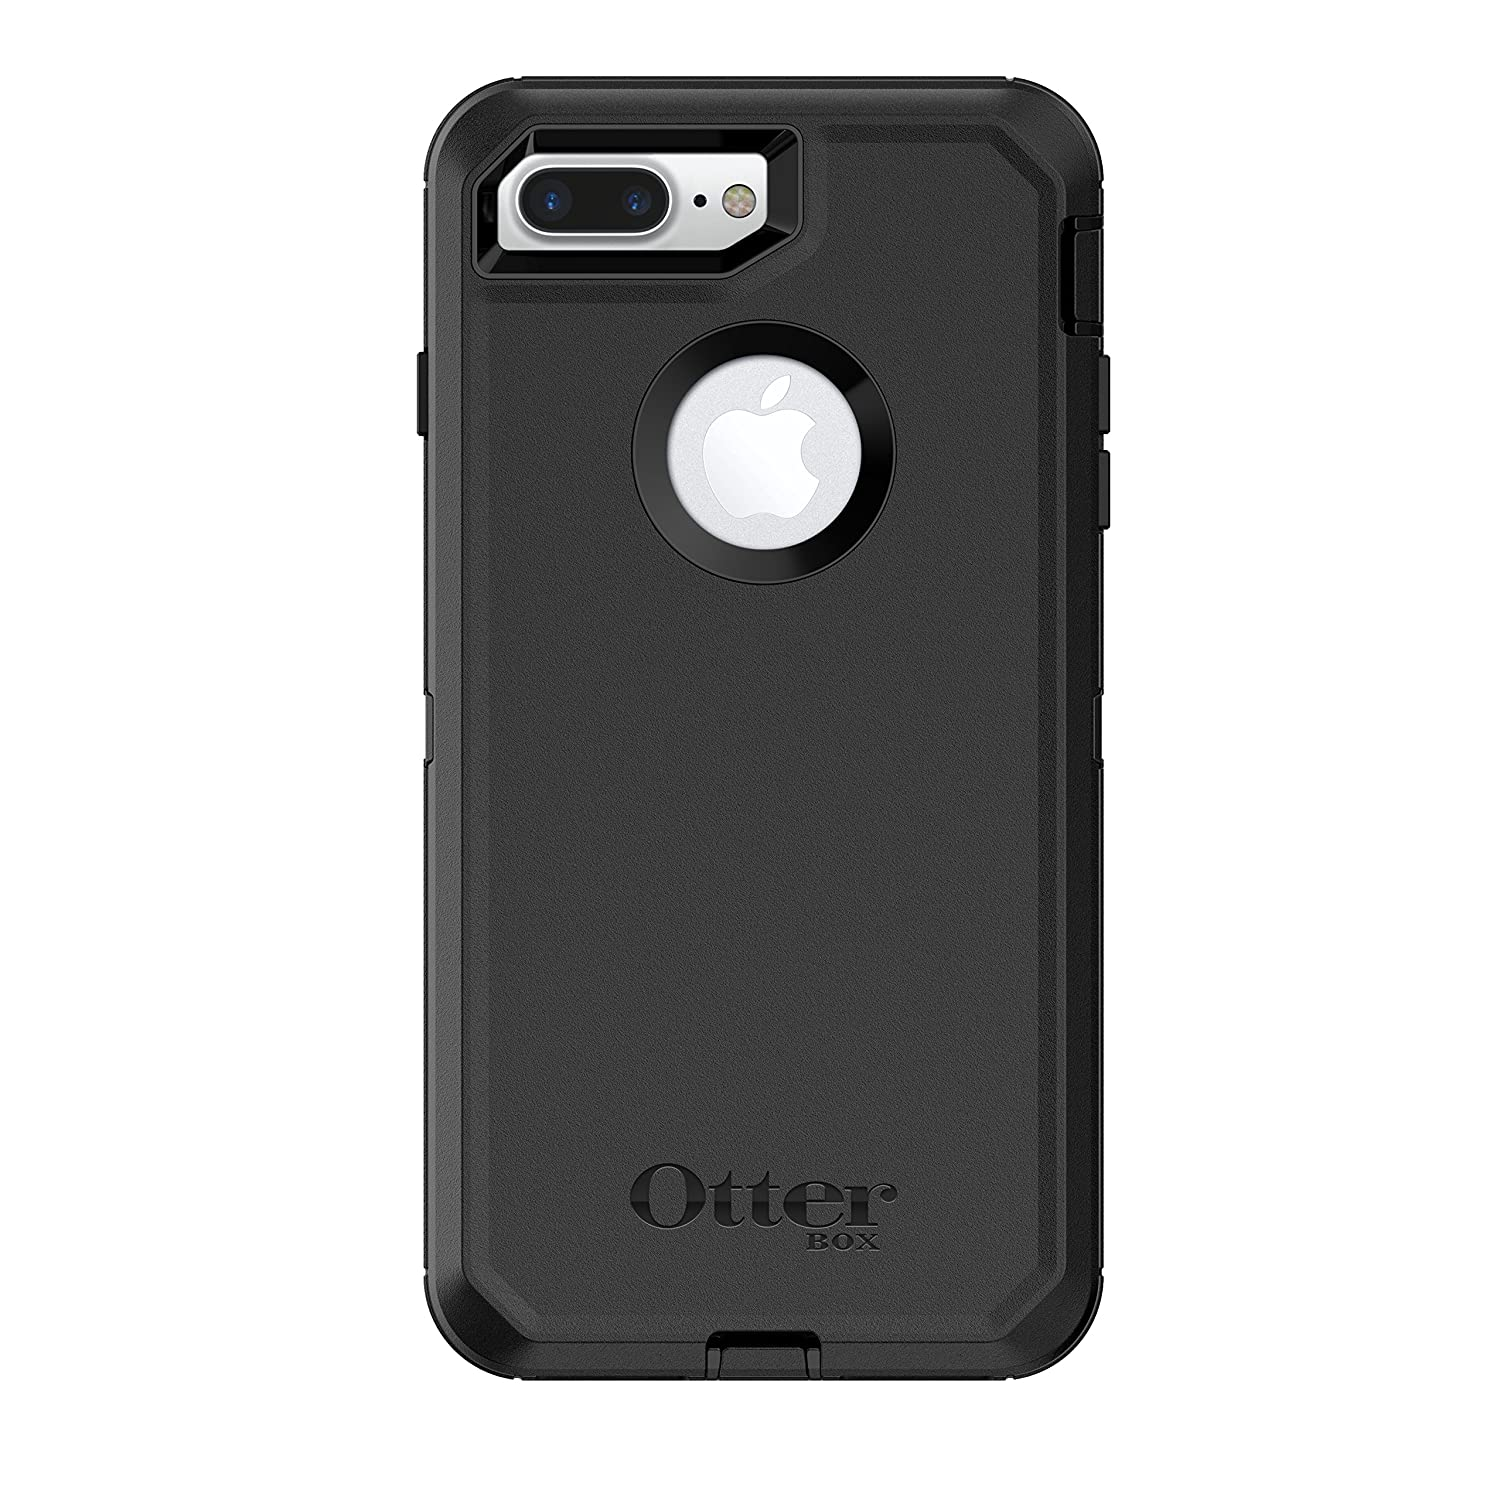 OtterBox DEFENDER SERIES Case foriPhone 8 Plus & iPhone 7 Plus (ONLY) - Retail Packaging - BLACK